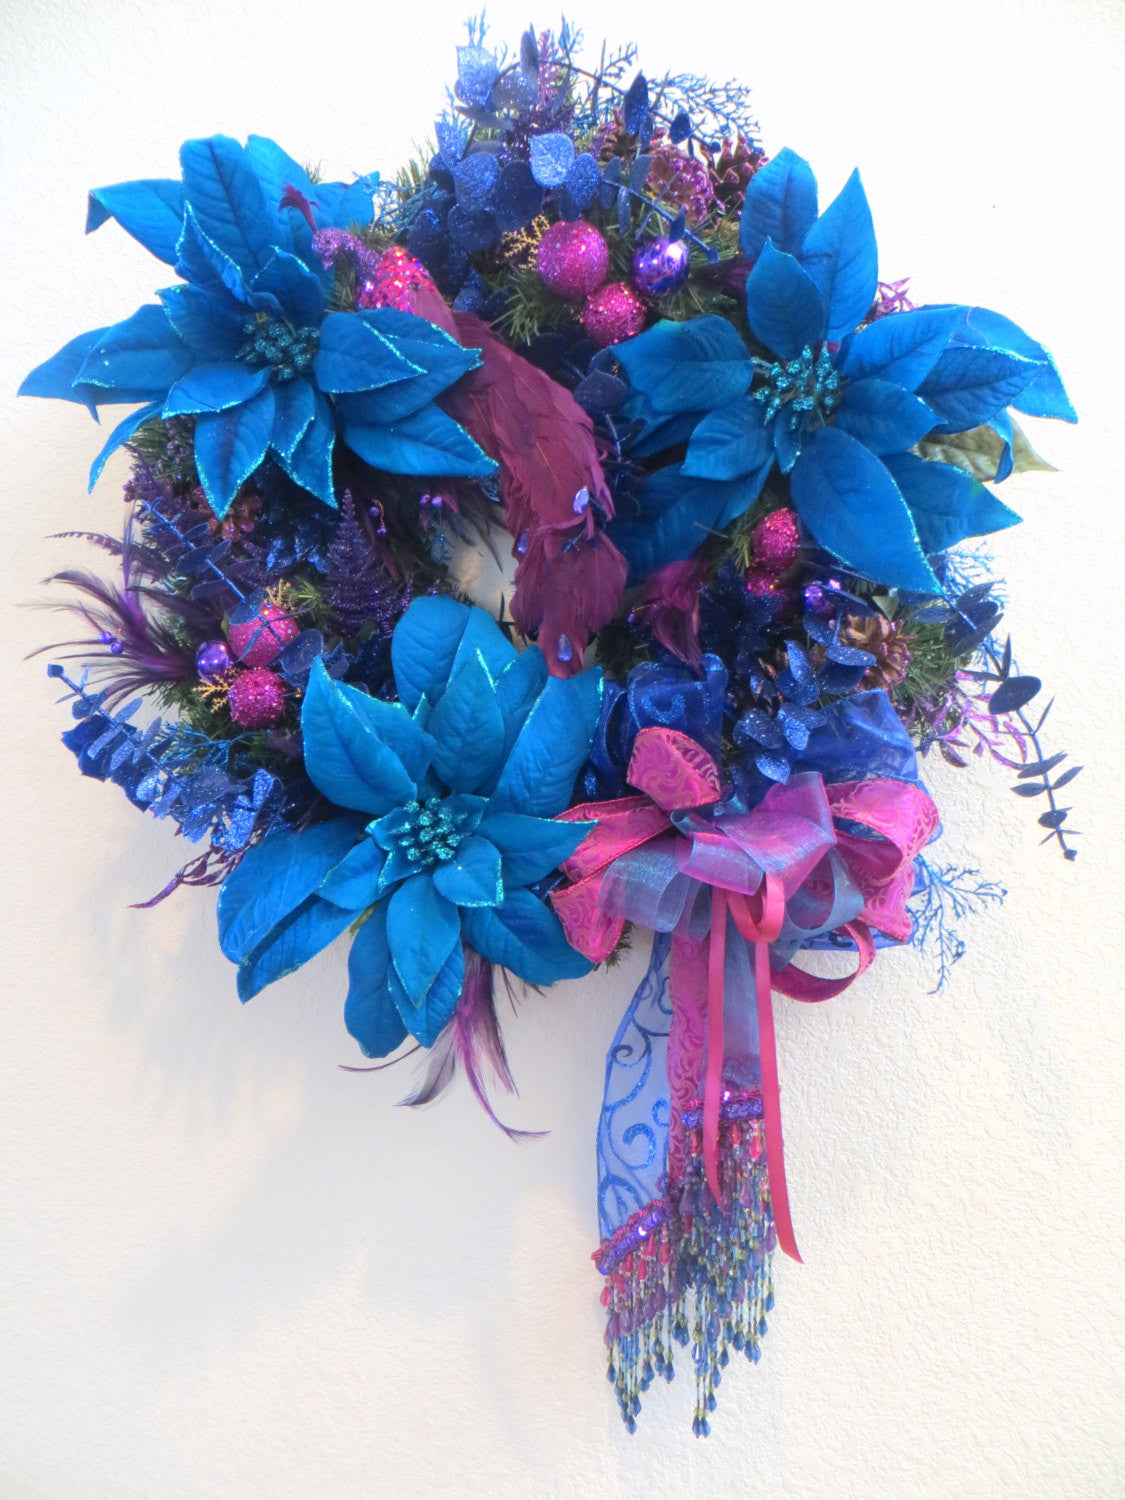 Peacock Victorian Beaded Wreath in Blue Turquoise, Amethyst Purple and Violet - Odyssey Creations